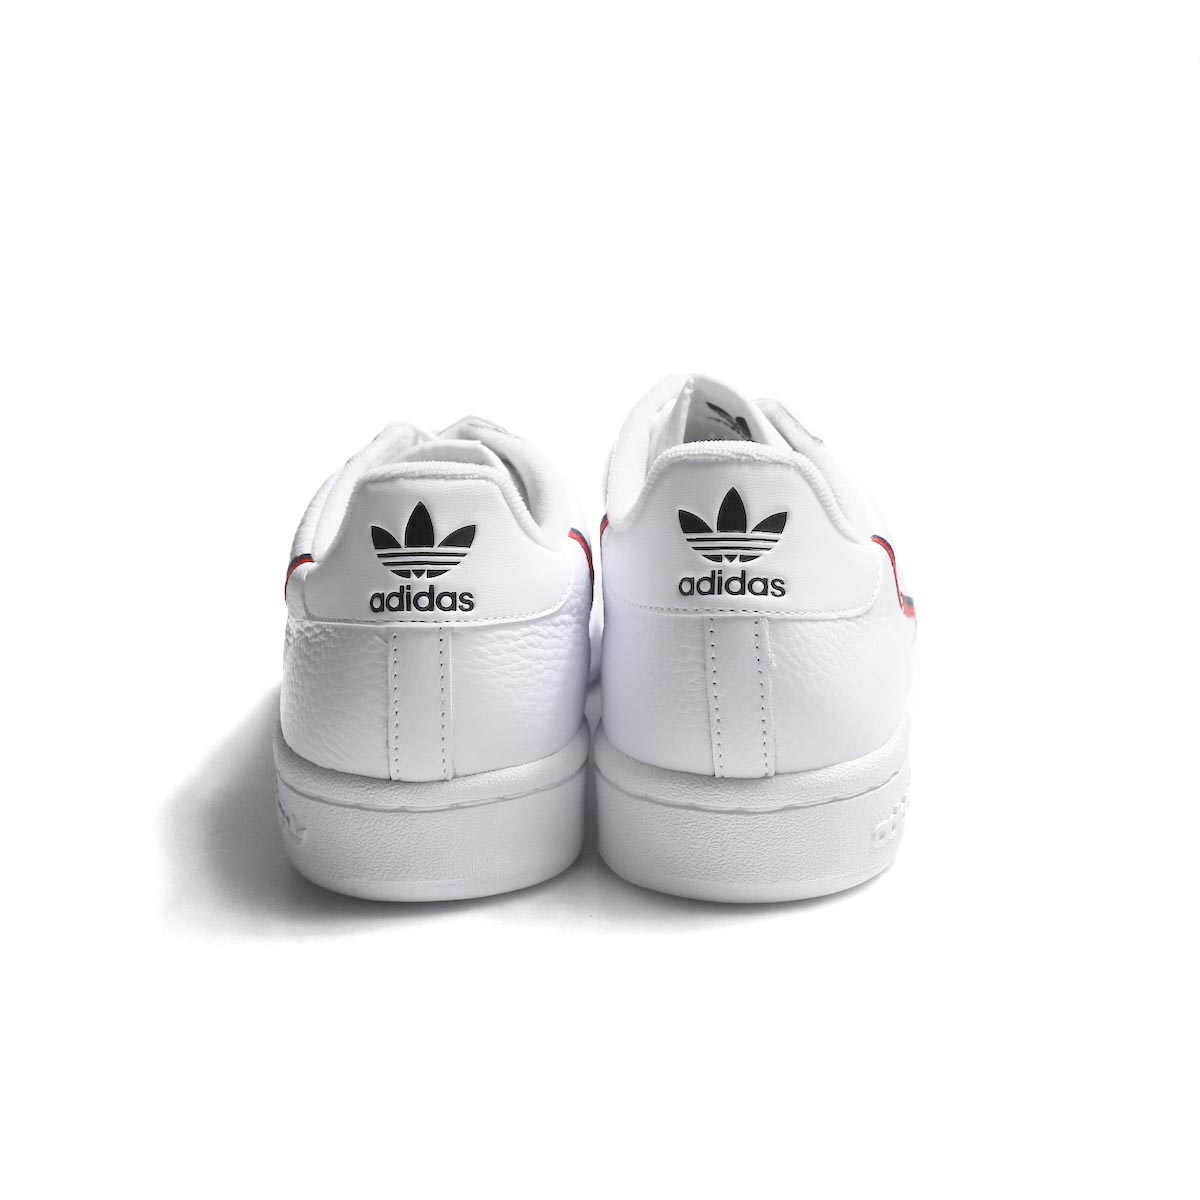 adidas originals / CONTINENTAL80 (G27706) -White 背面